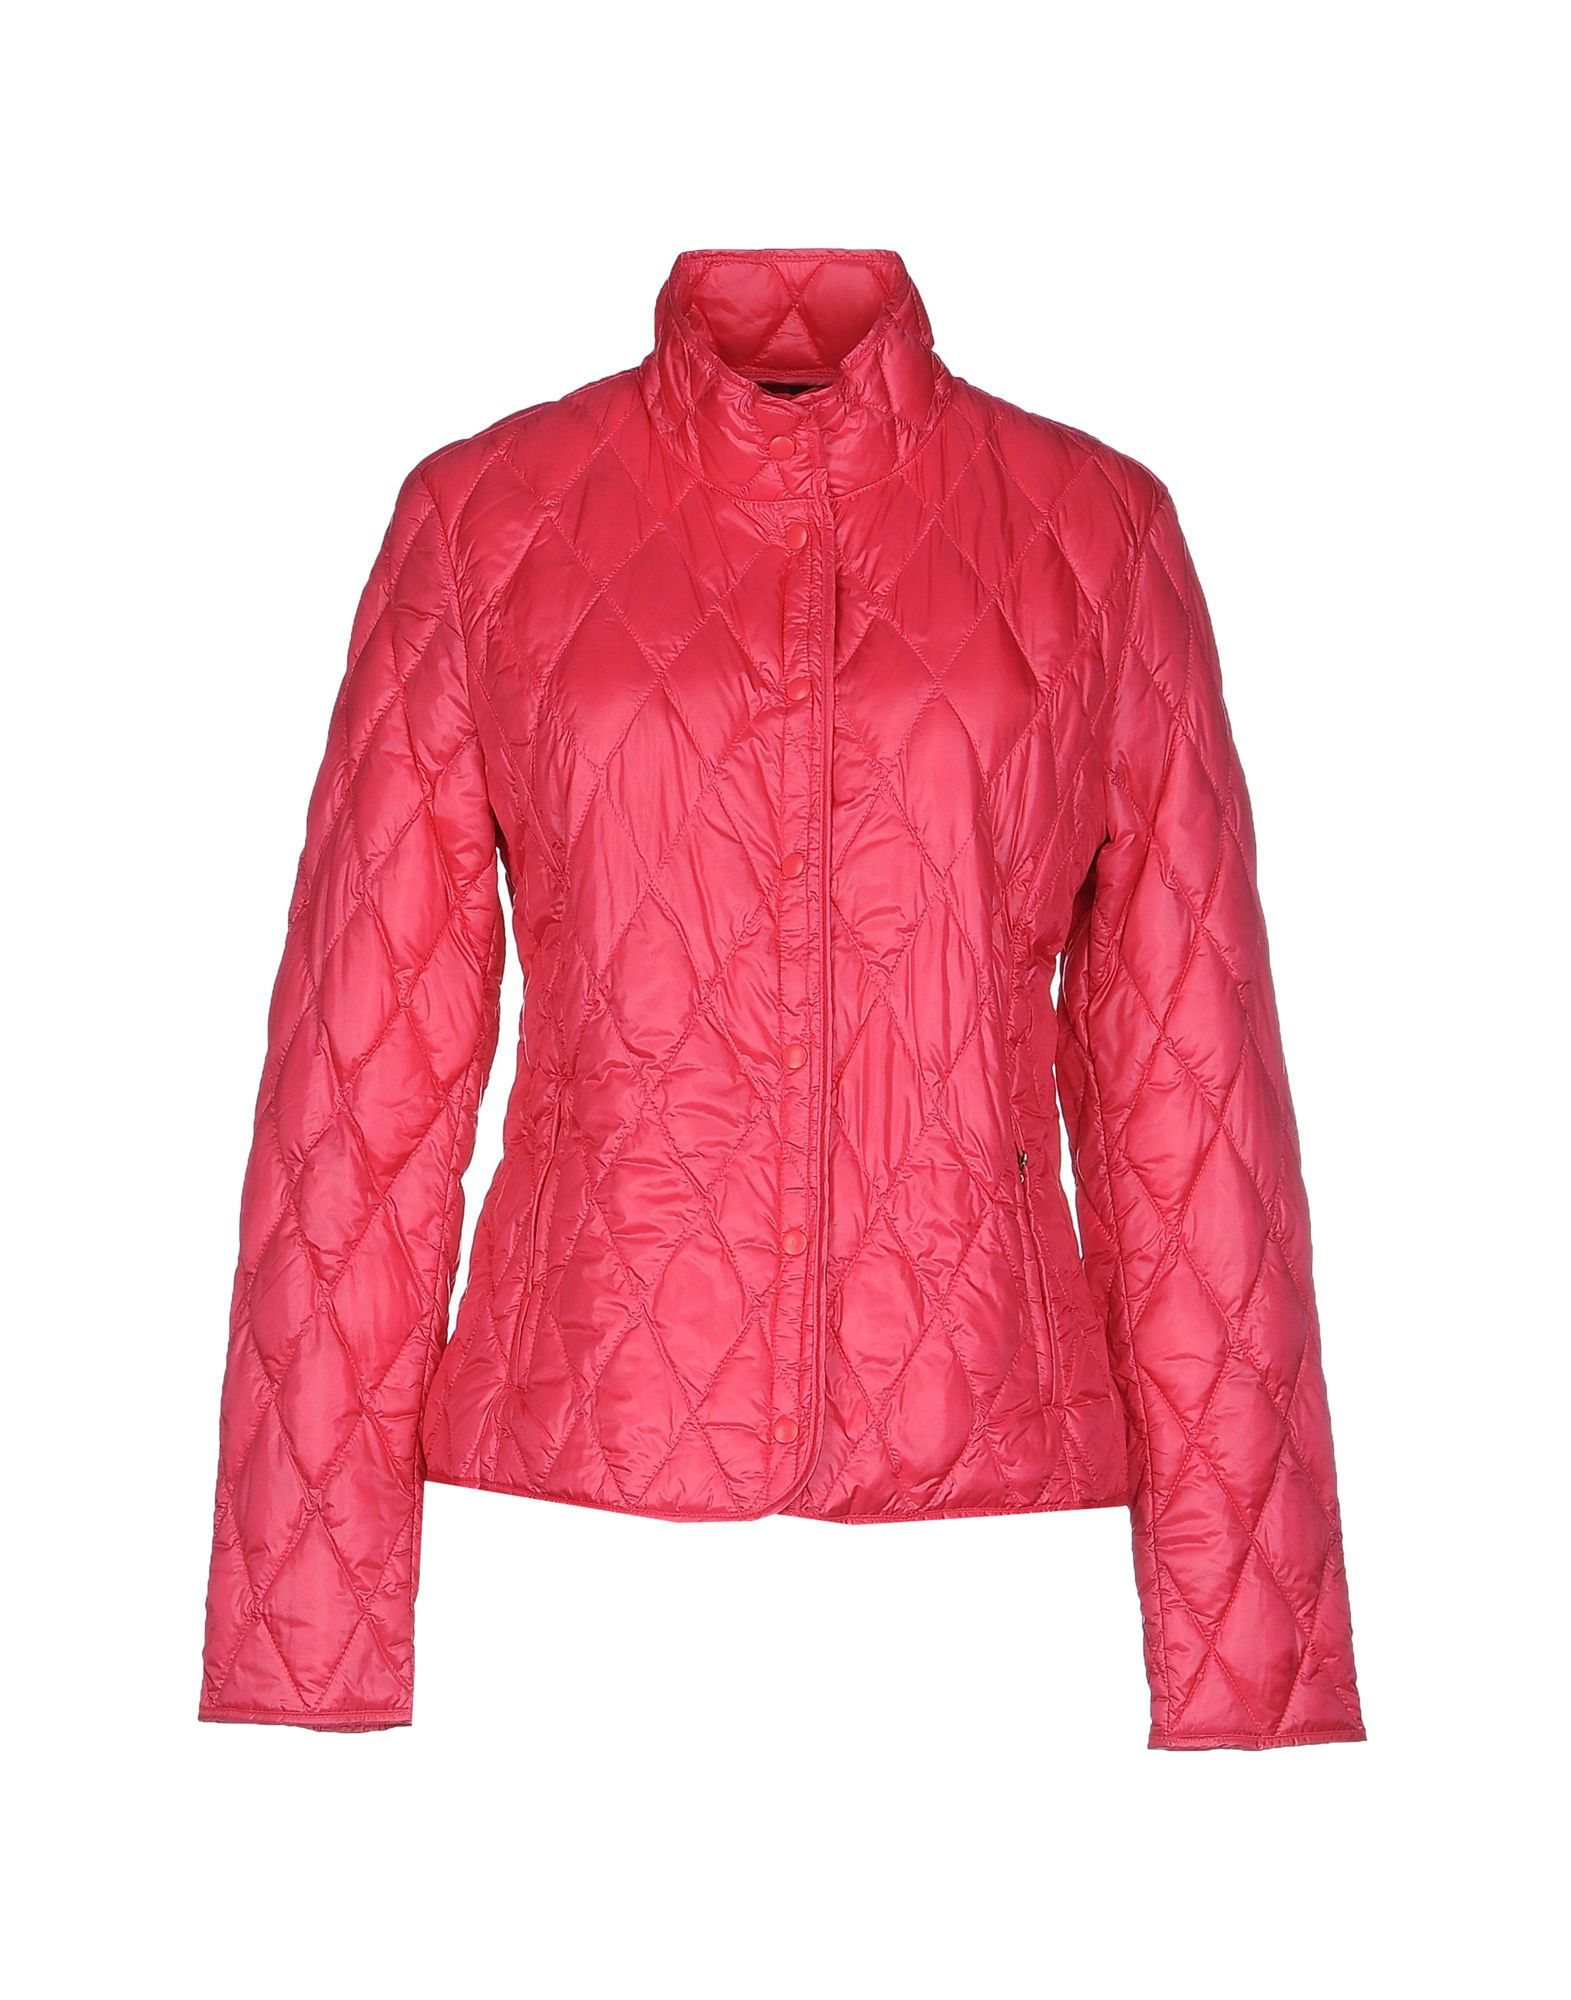 Bpd be proud of this dress Down Jacket in Red